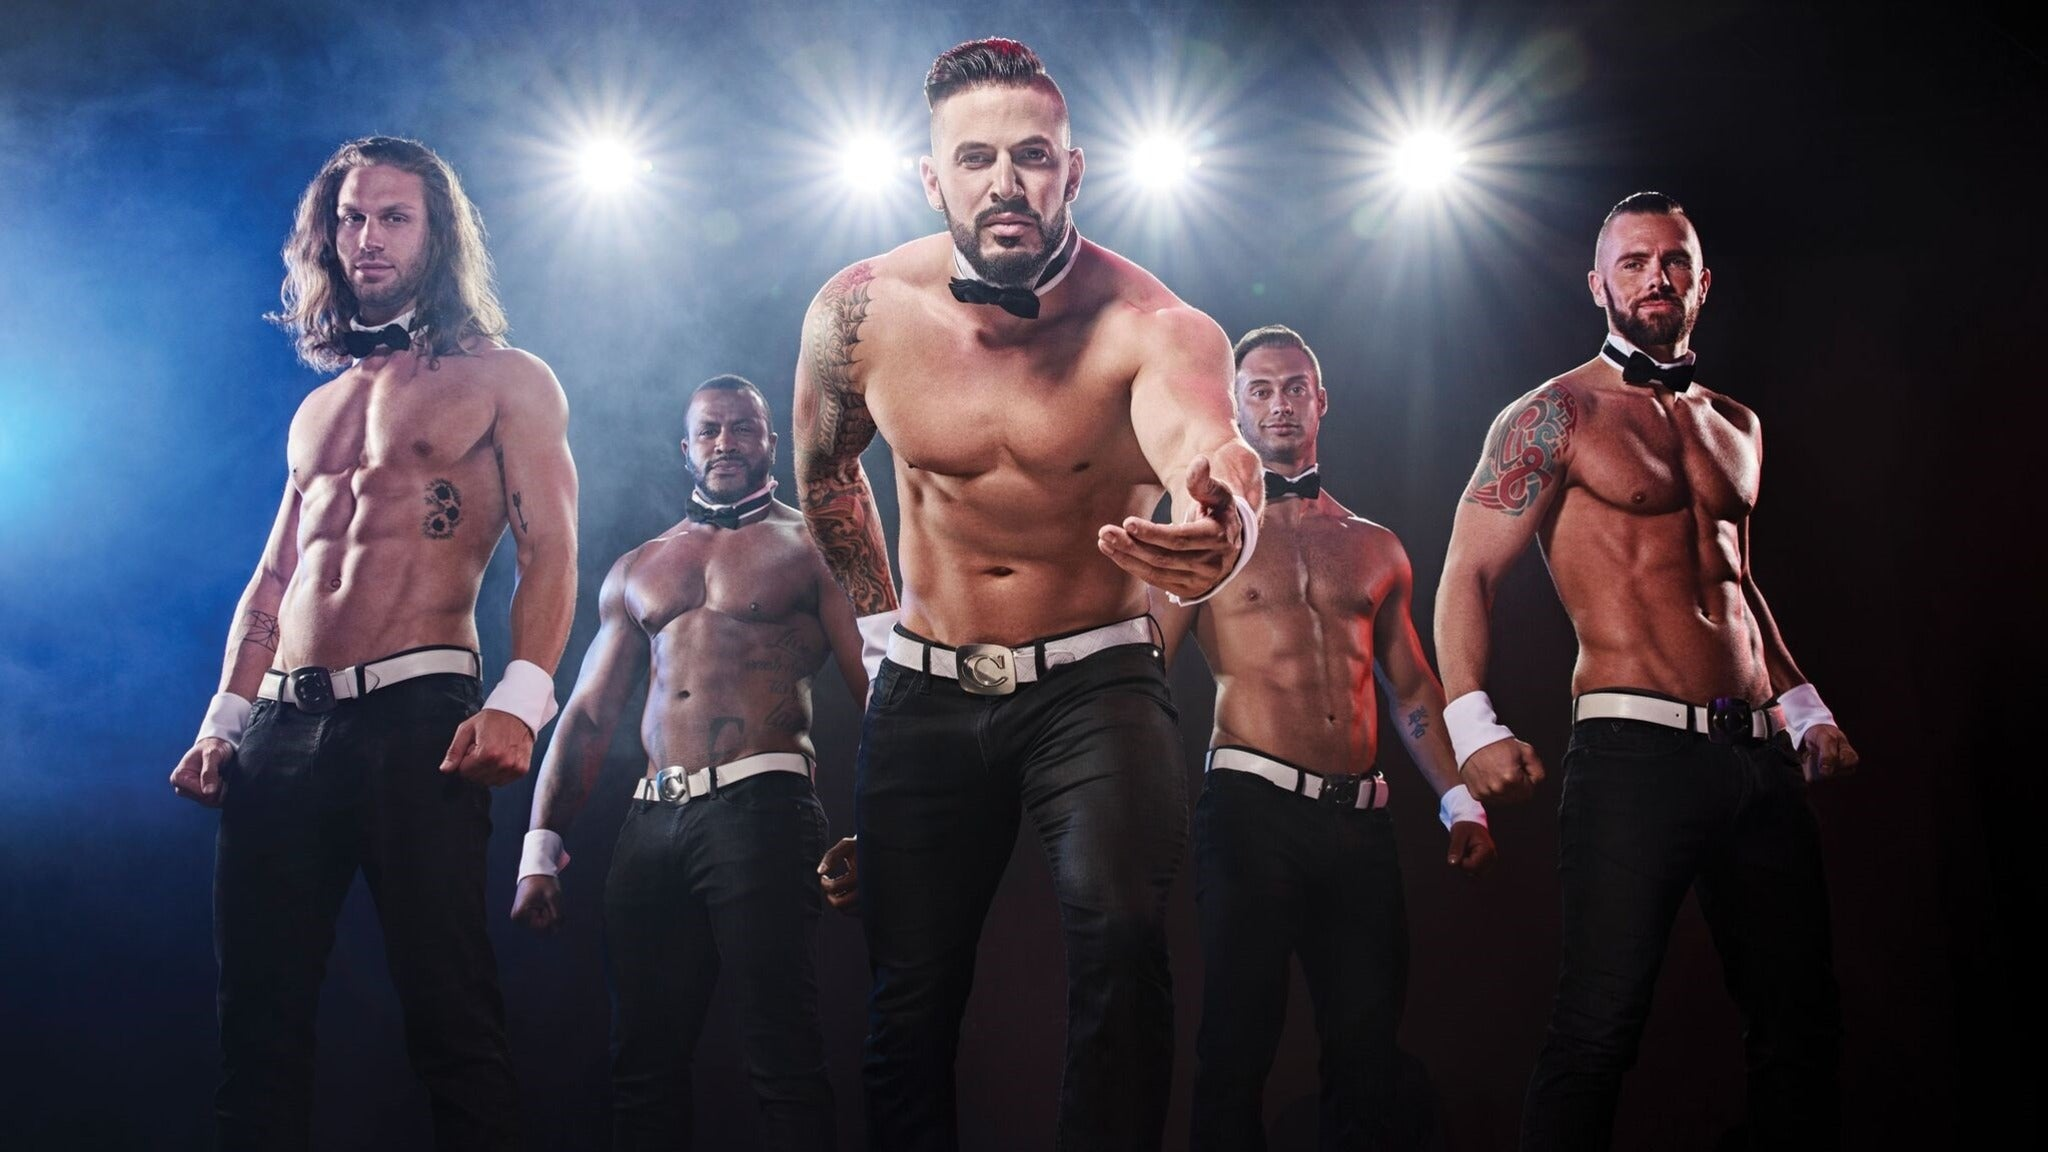 Chippendales at Sycuan Casino